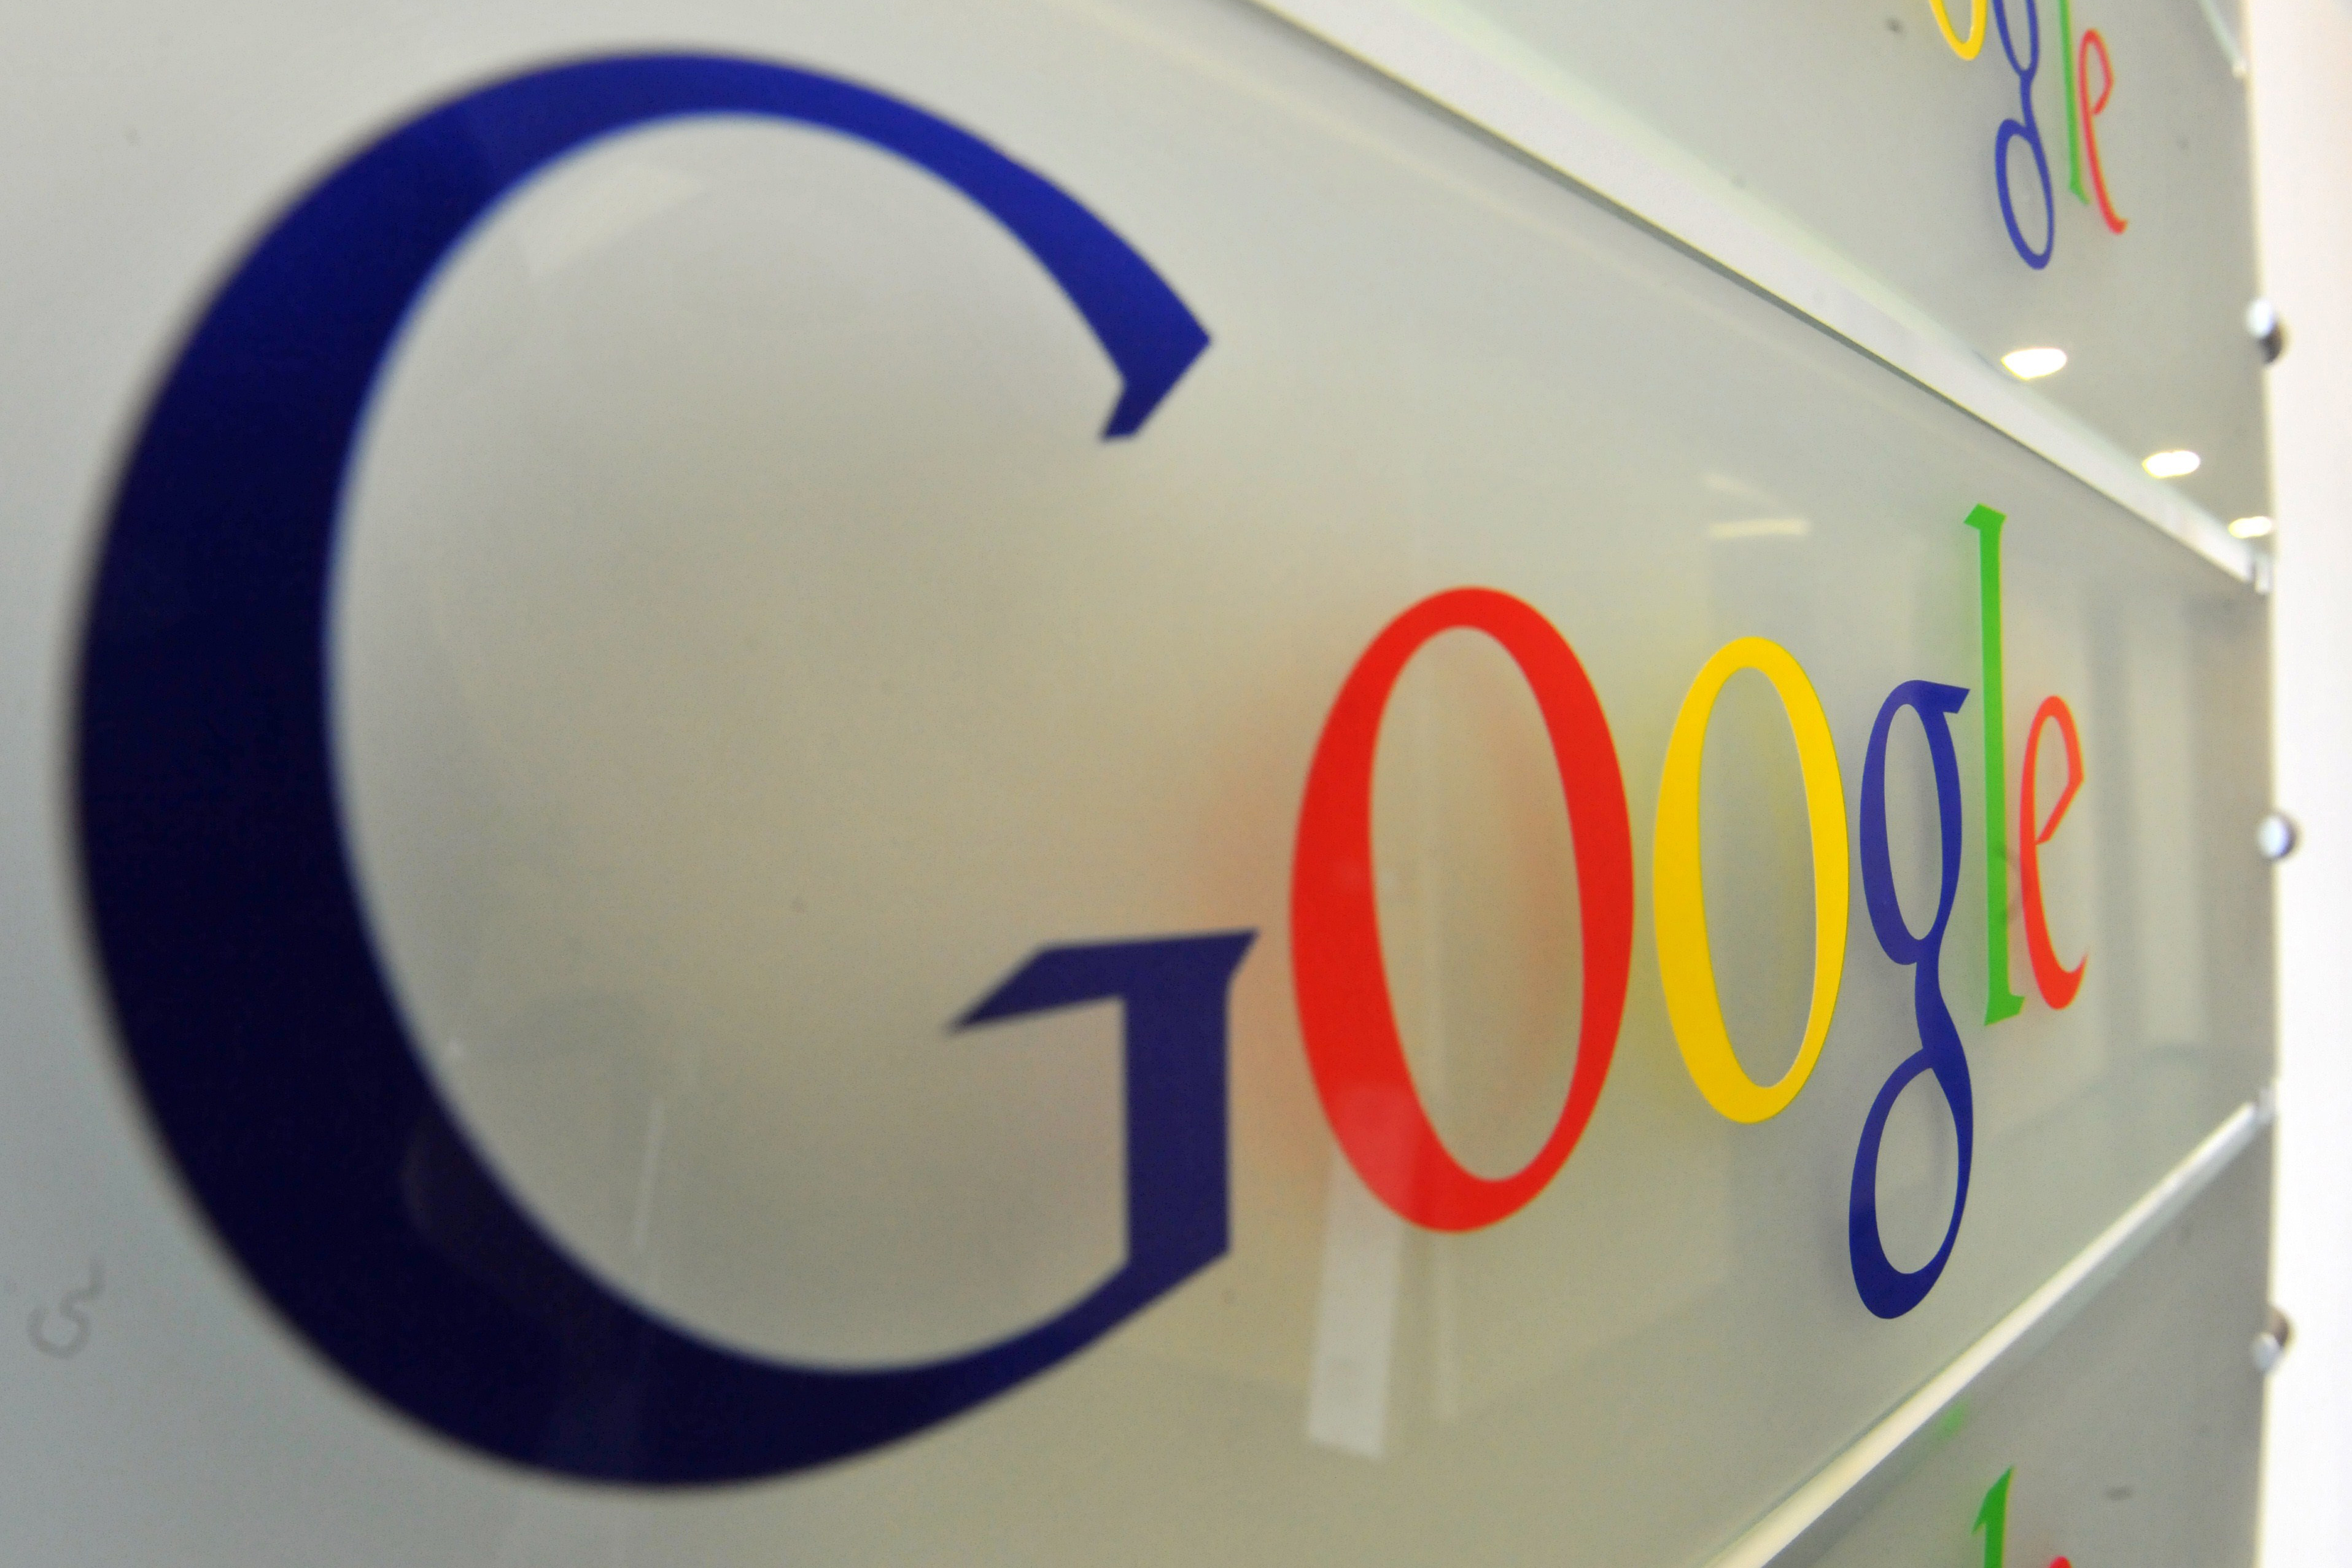 google tops reputation rankings for corporate responsibility us news